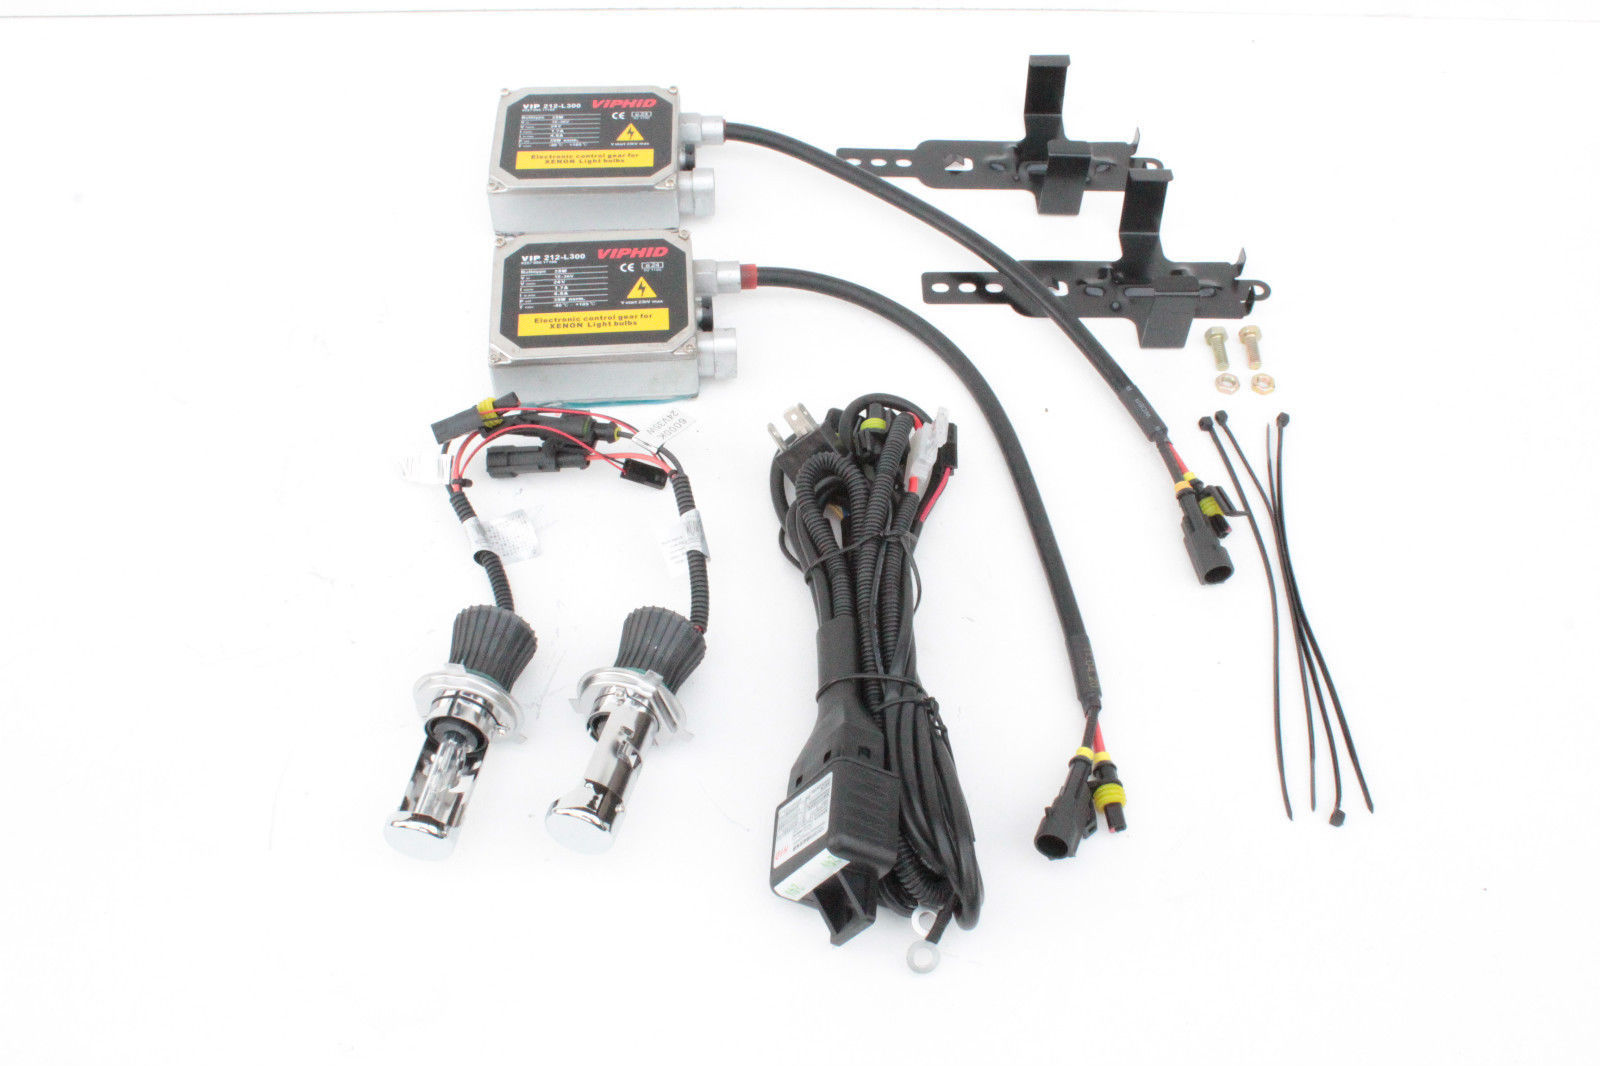 Hid Conversion Kit H4 24 Volt 35 Watt High Low With Slim